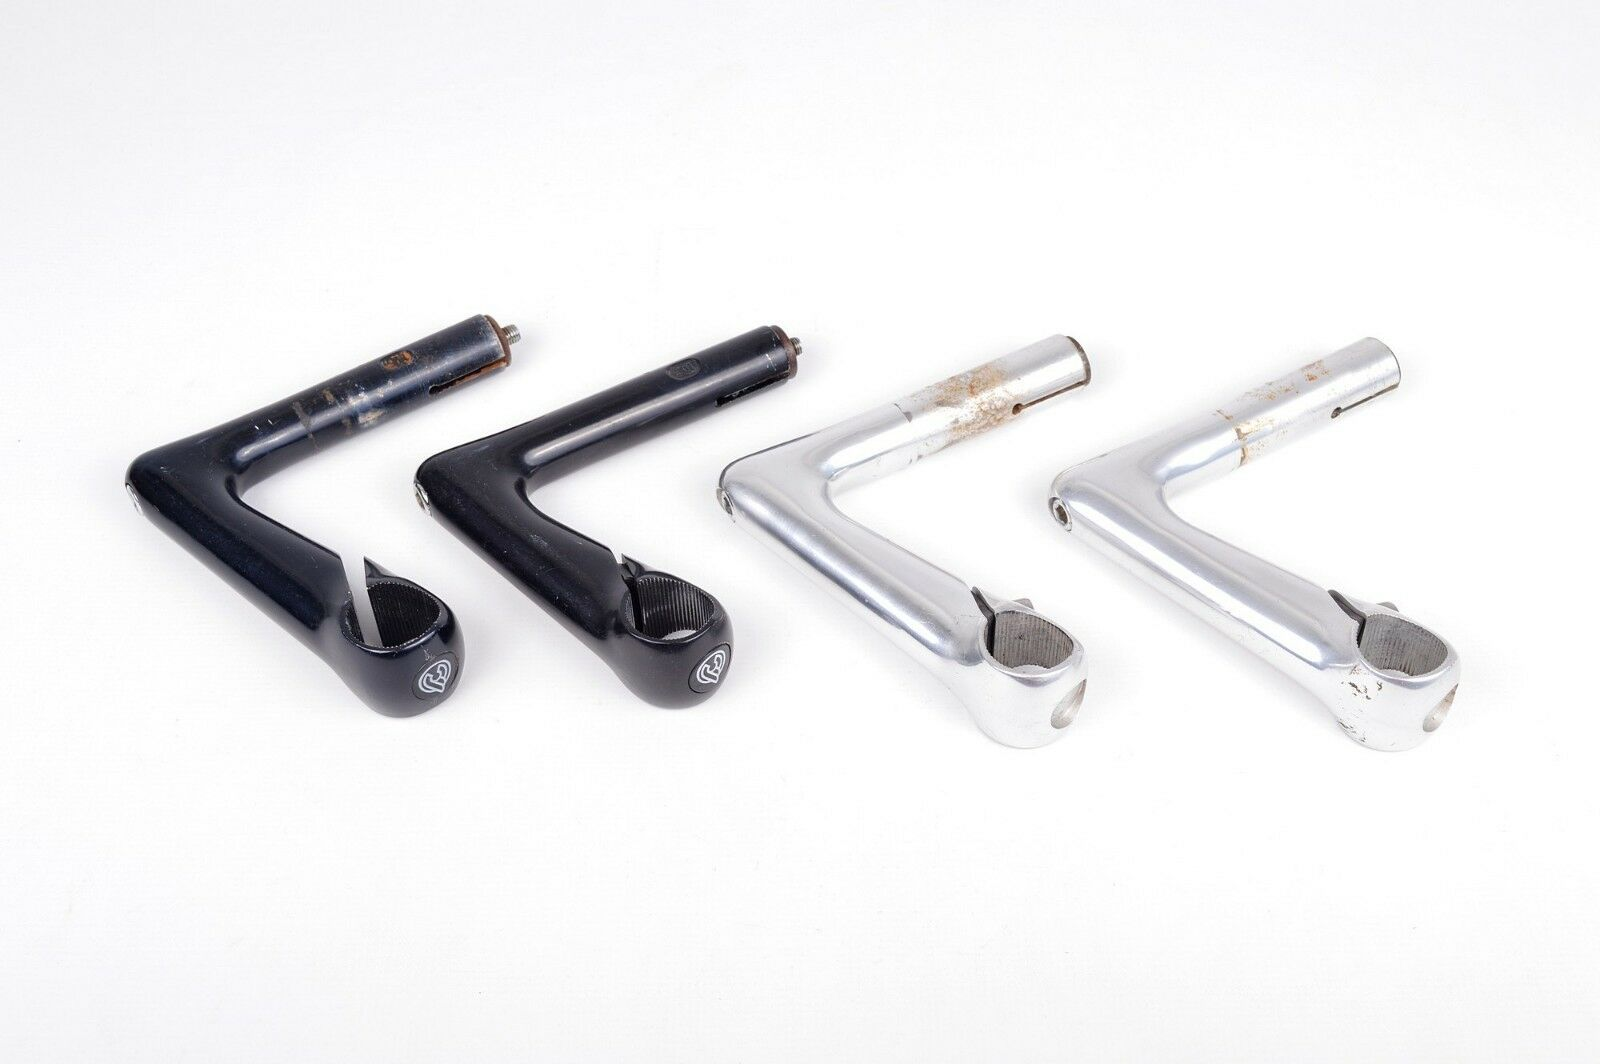 Vintage Cinelli XA Stem  26.4 mm Clamp 3 Different Lengths 2 colors 4 To Choose  timeless classic